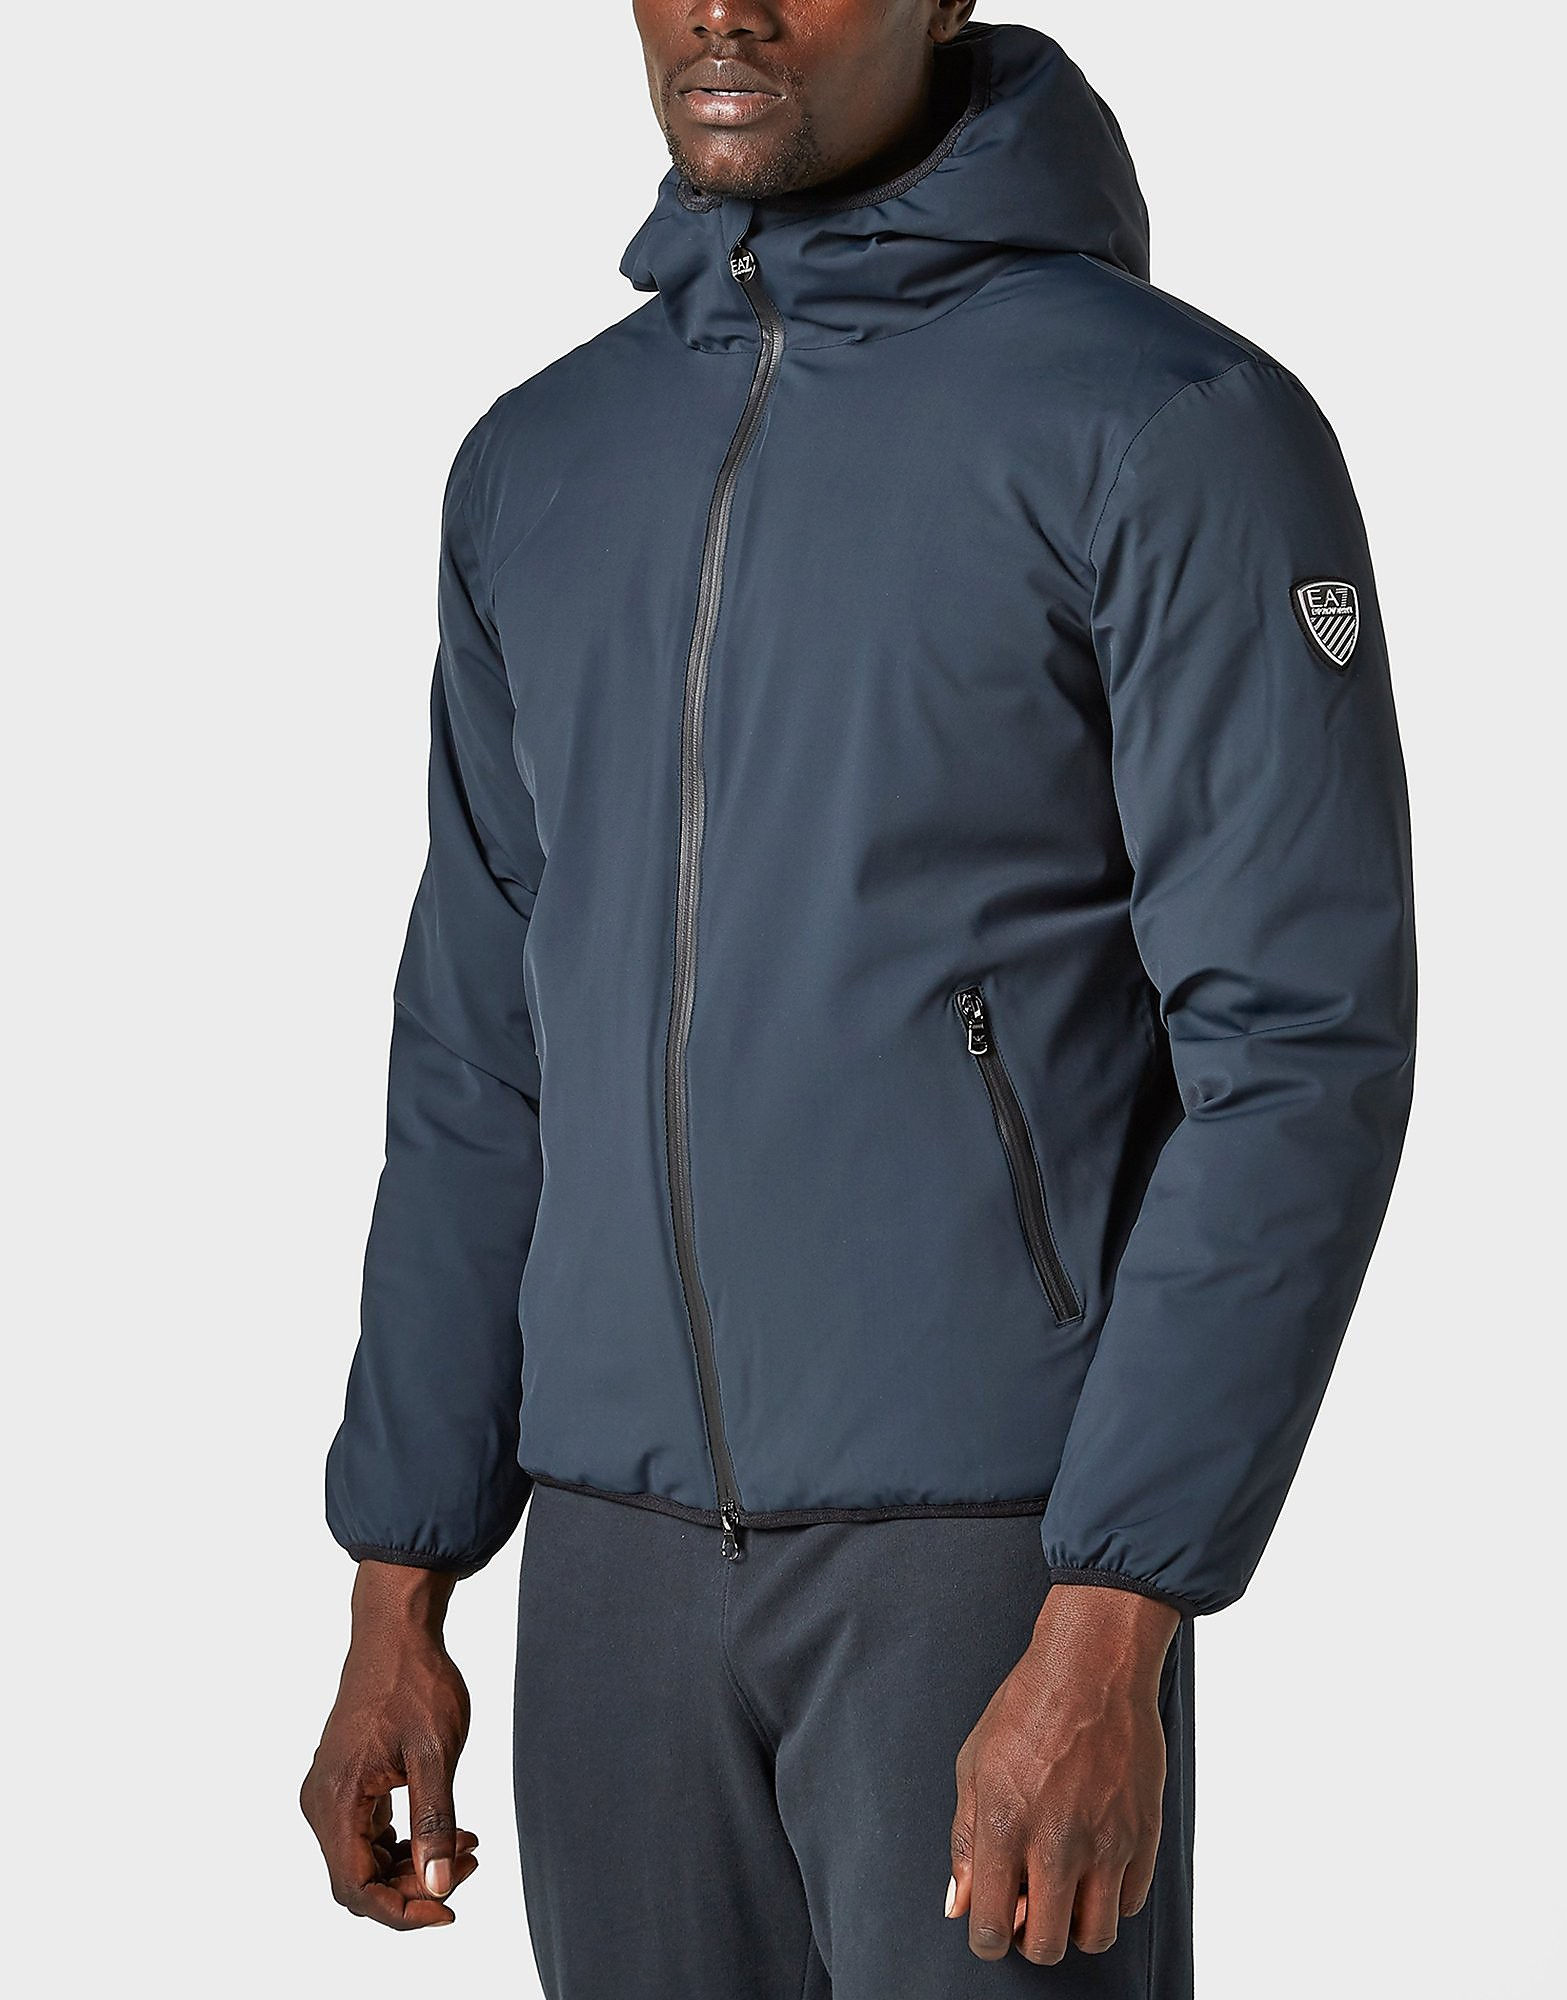 Emporio Armani EA7 Bubble Lined Jacket